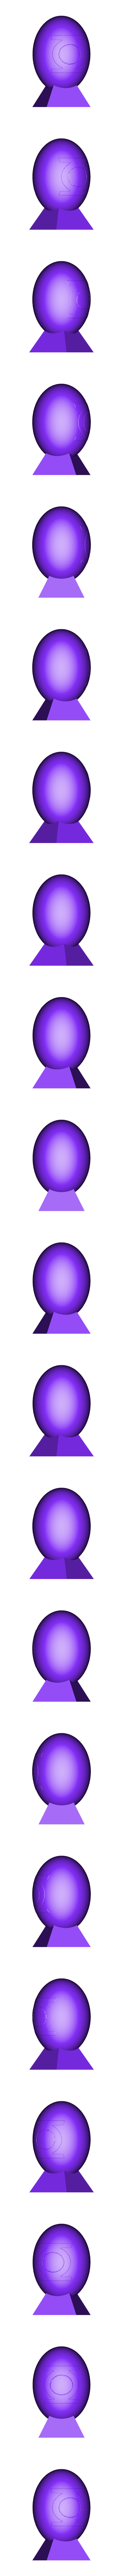 Super oeufs green lantern.stl Download free STL file Super Eggs Collection with base • 3D printer object, psl